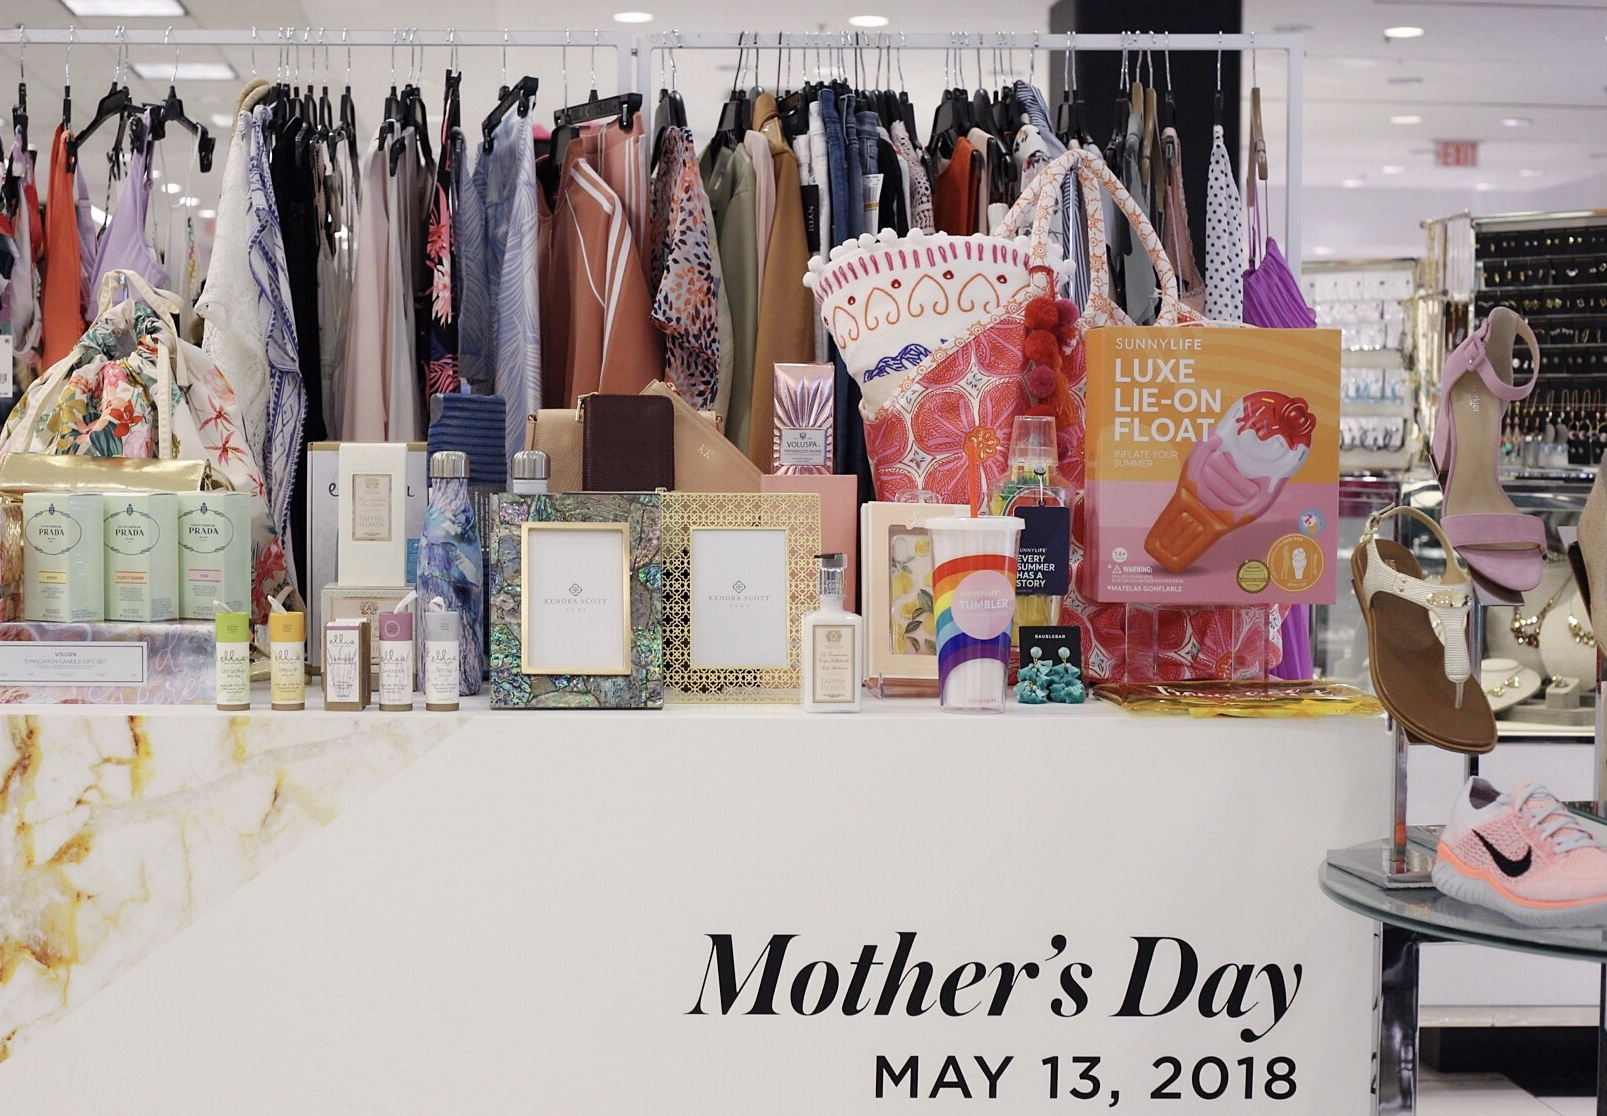 bloomingdales gift guide, mothers day gifts, shopping guides, gifts for mom, the mom life gifts